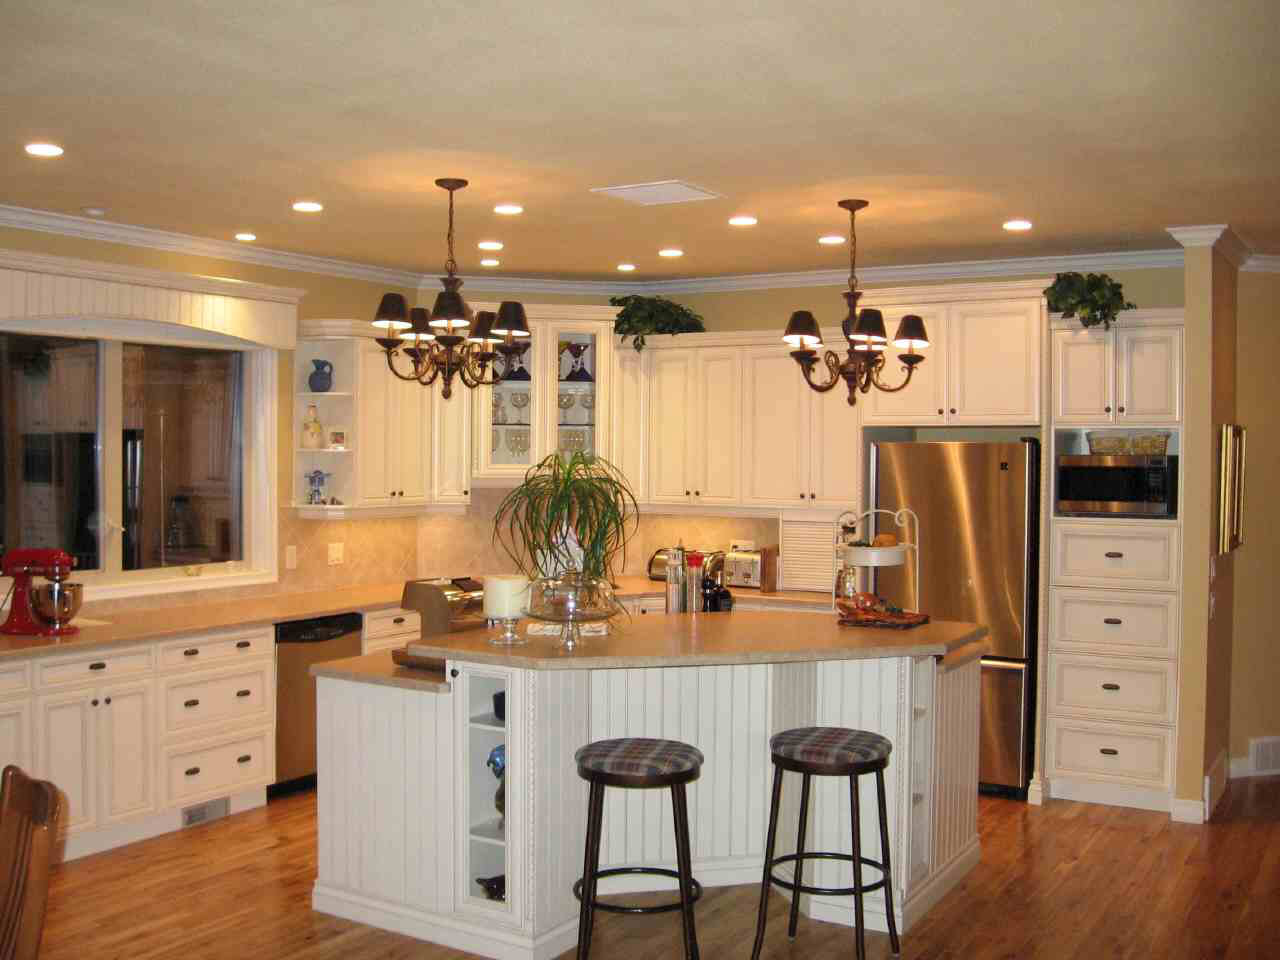 Interior kitchen design ideas home ideas decoration for Kitchen ideas and designs